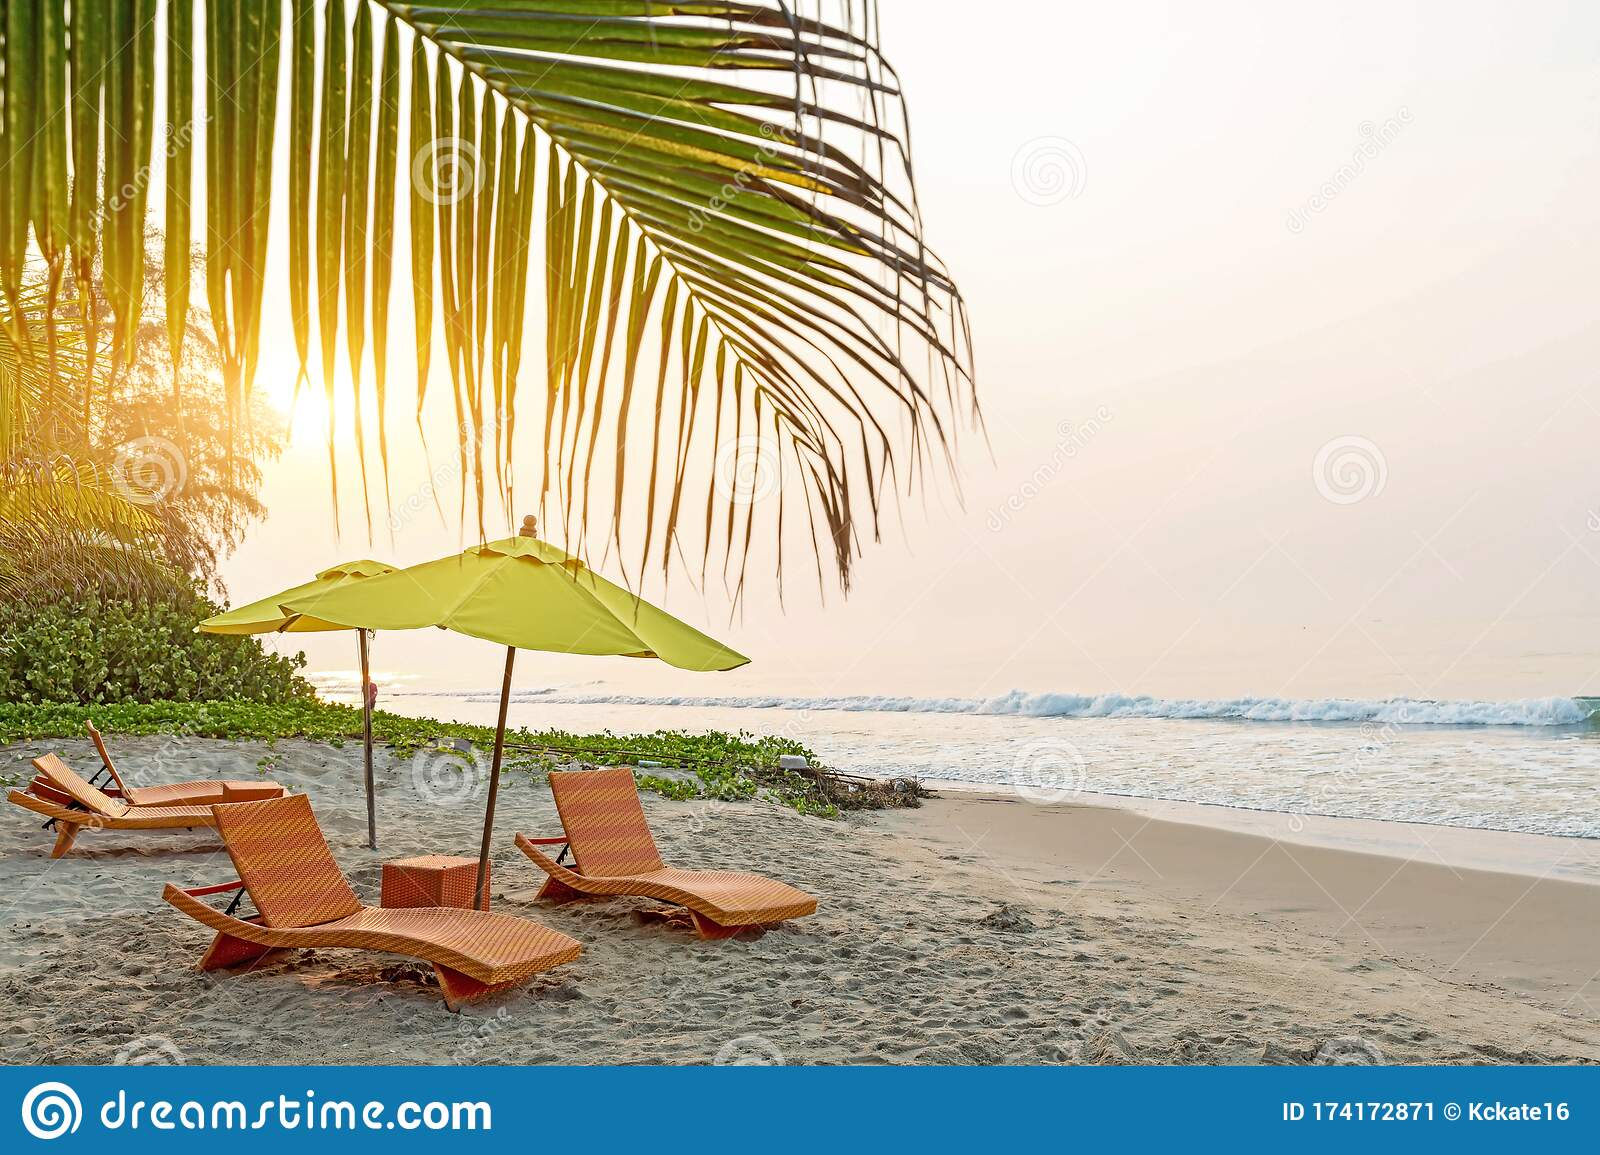 Beach Chair Under The Big Umbrella And Was On The Beach Beautiful Beach Chairs On The Sandy Beach Near The Sea Summer Holiday Stock Image Image Of Leisure Lounge 174172871